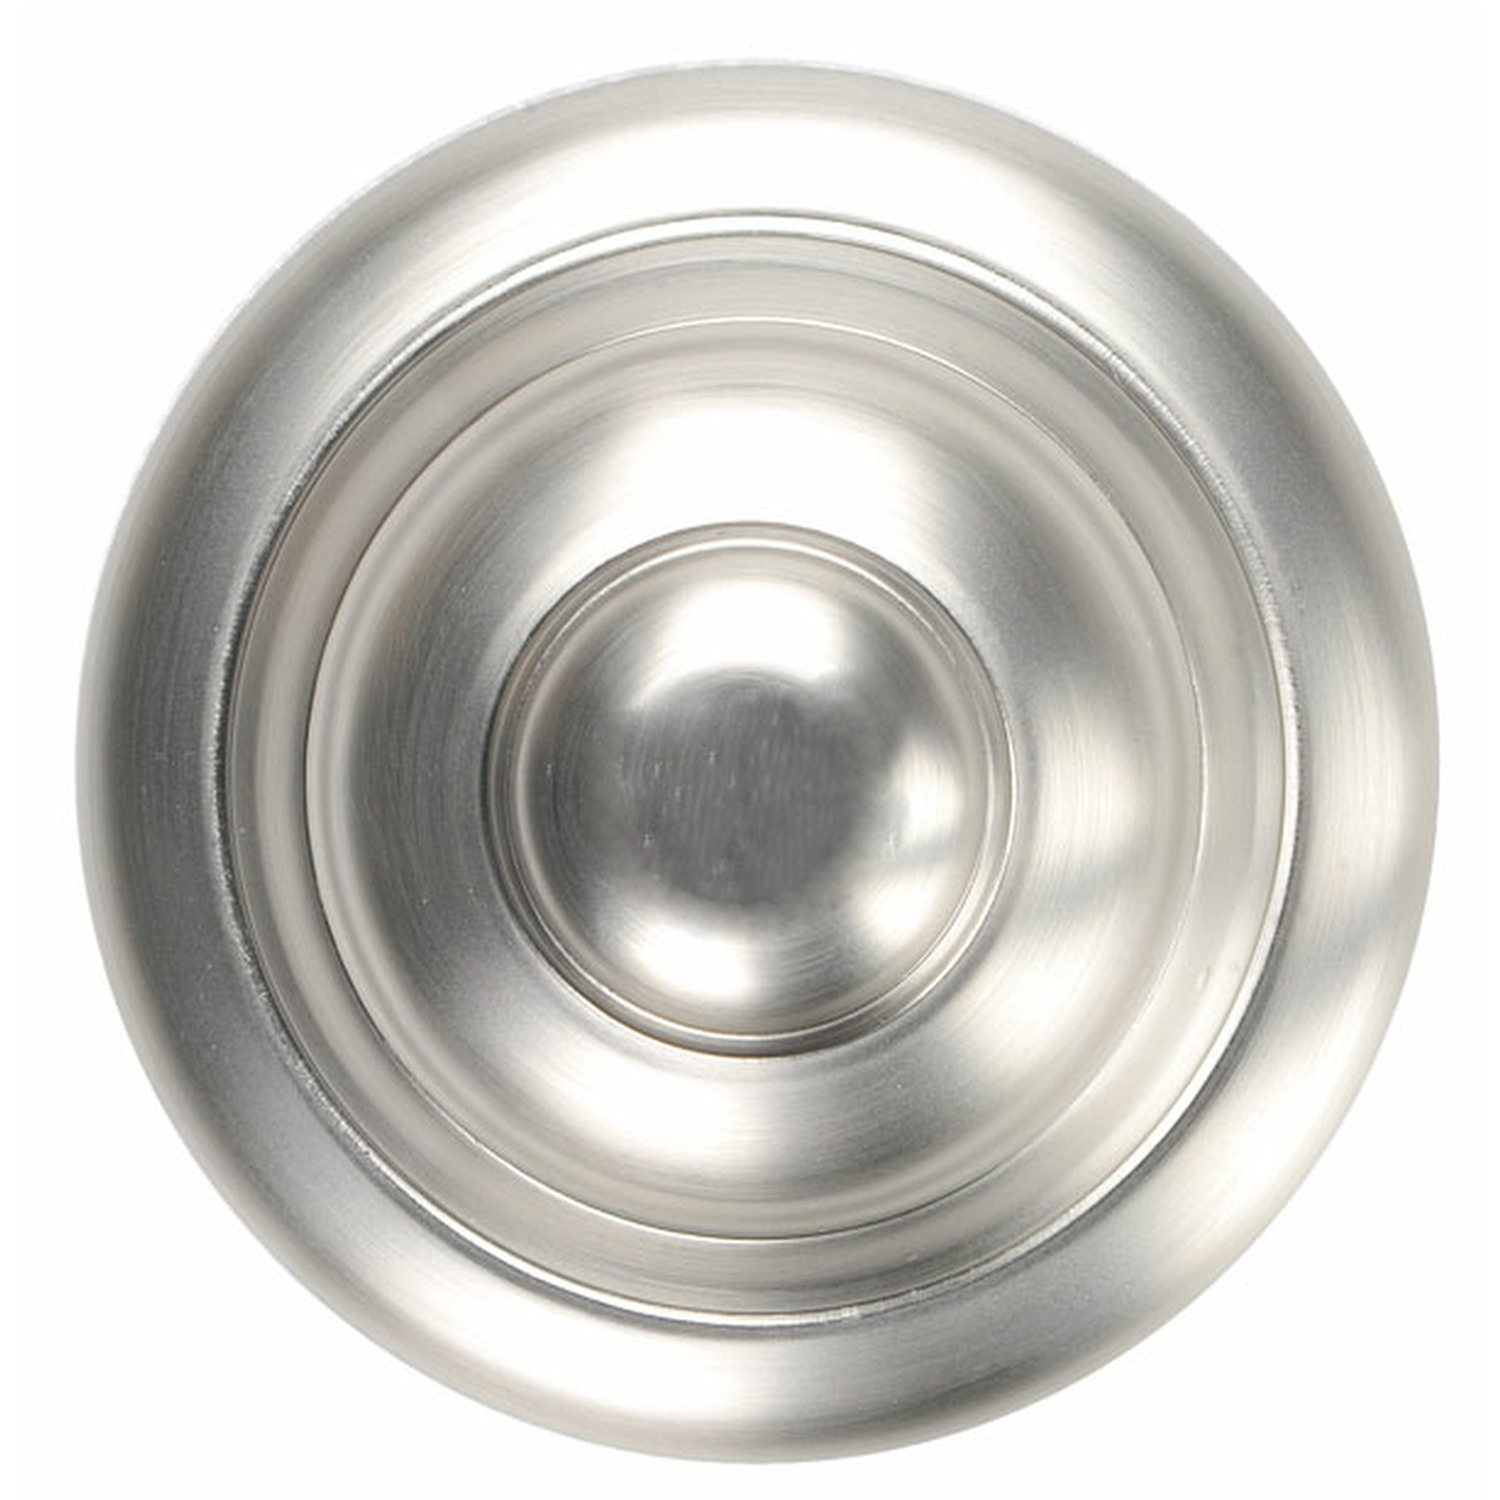 SL-Brushed-Stainless-Steel